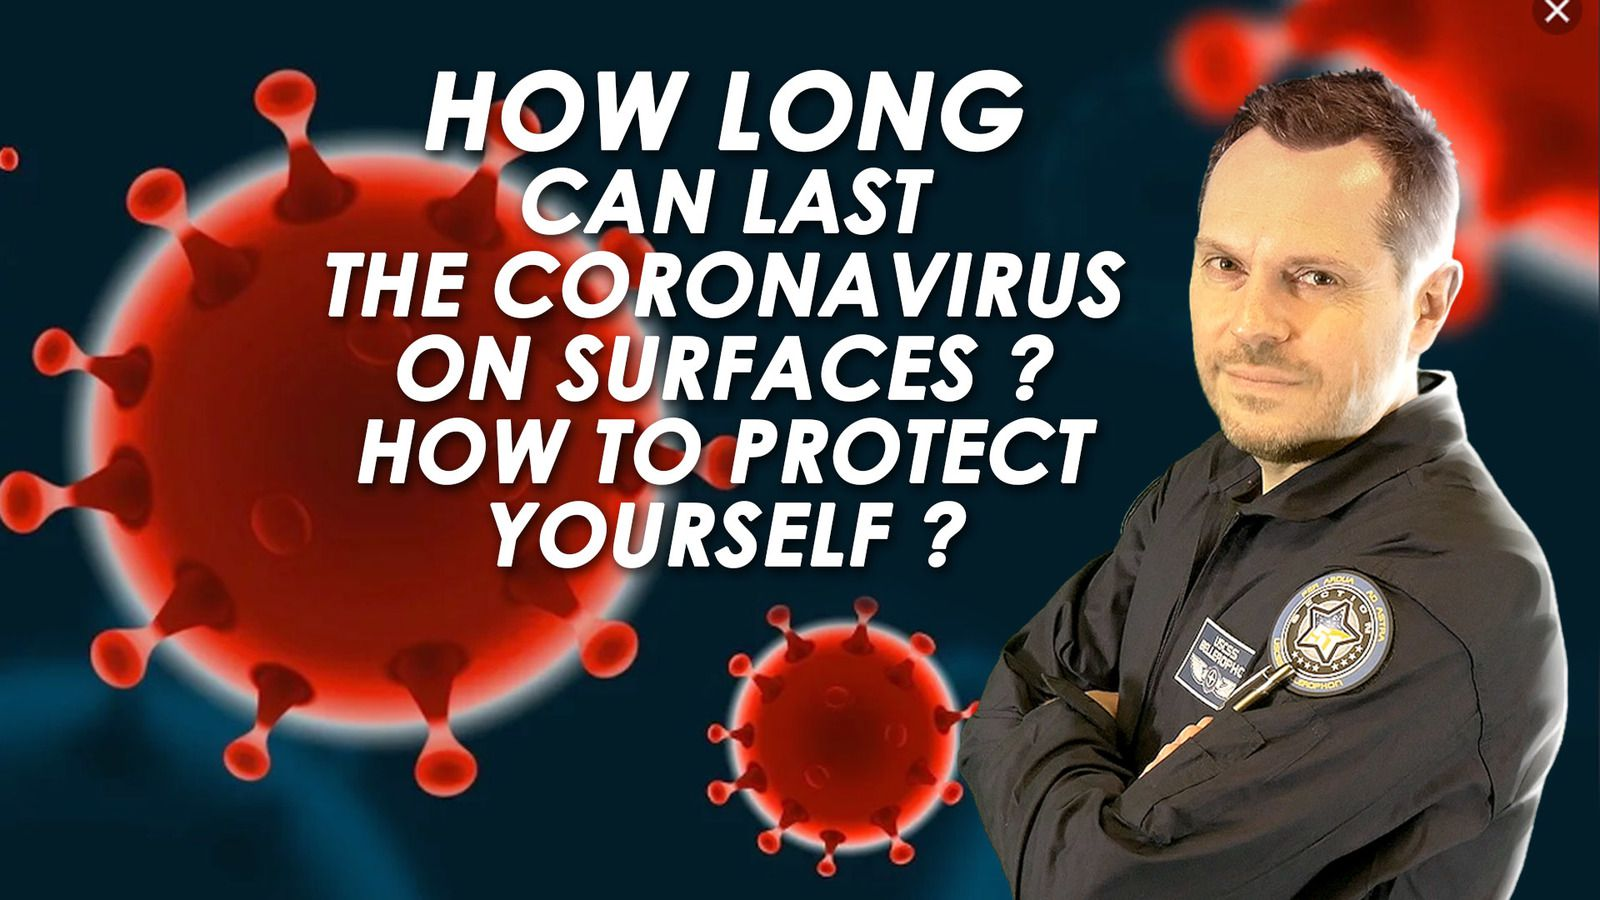 😷 How Long Can Last The Coronavirus On Surfaces and How To Protect Yourself ? 🧼